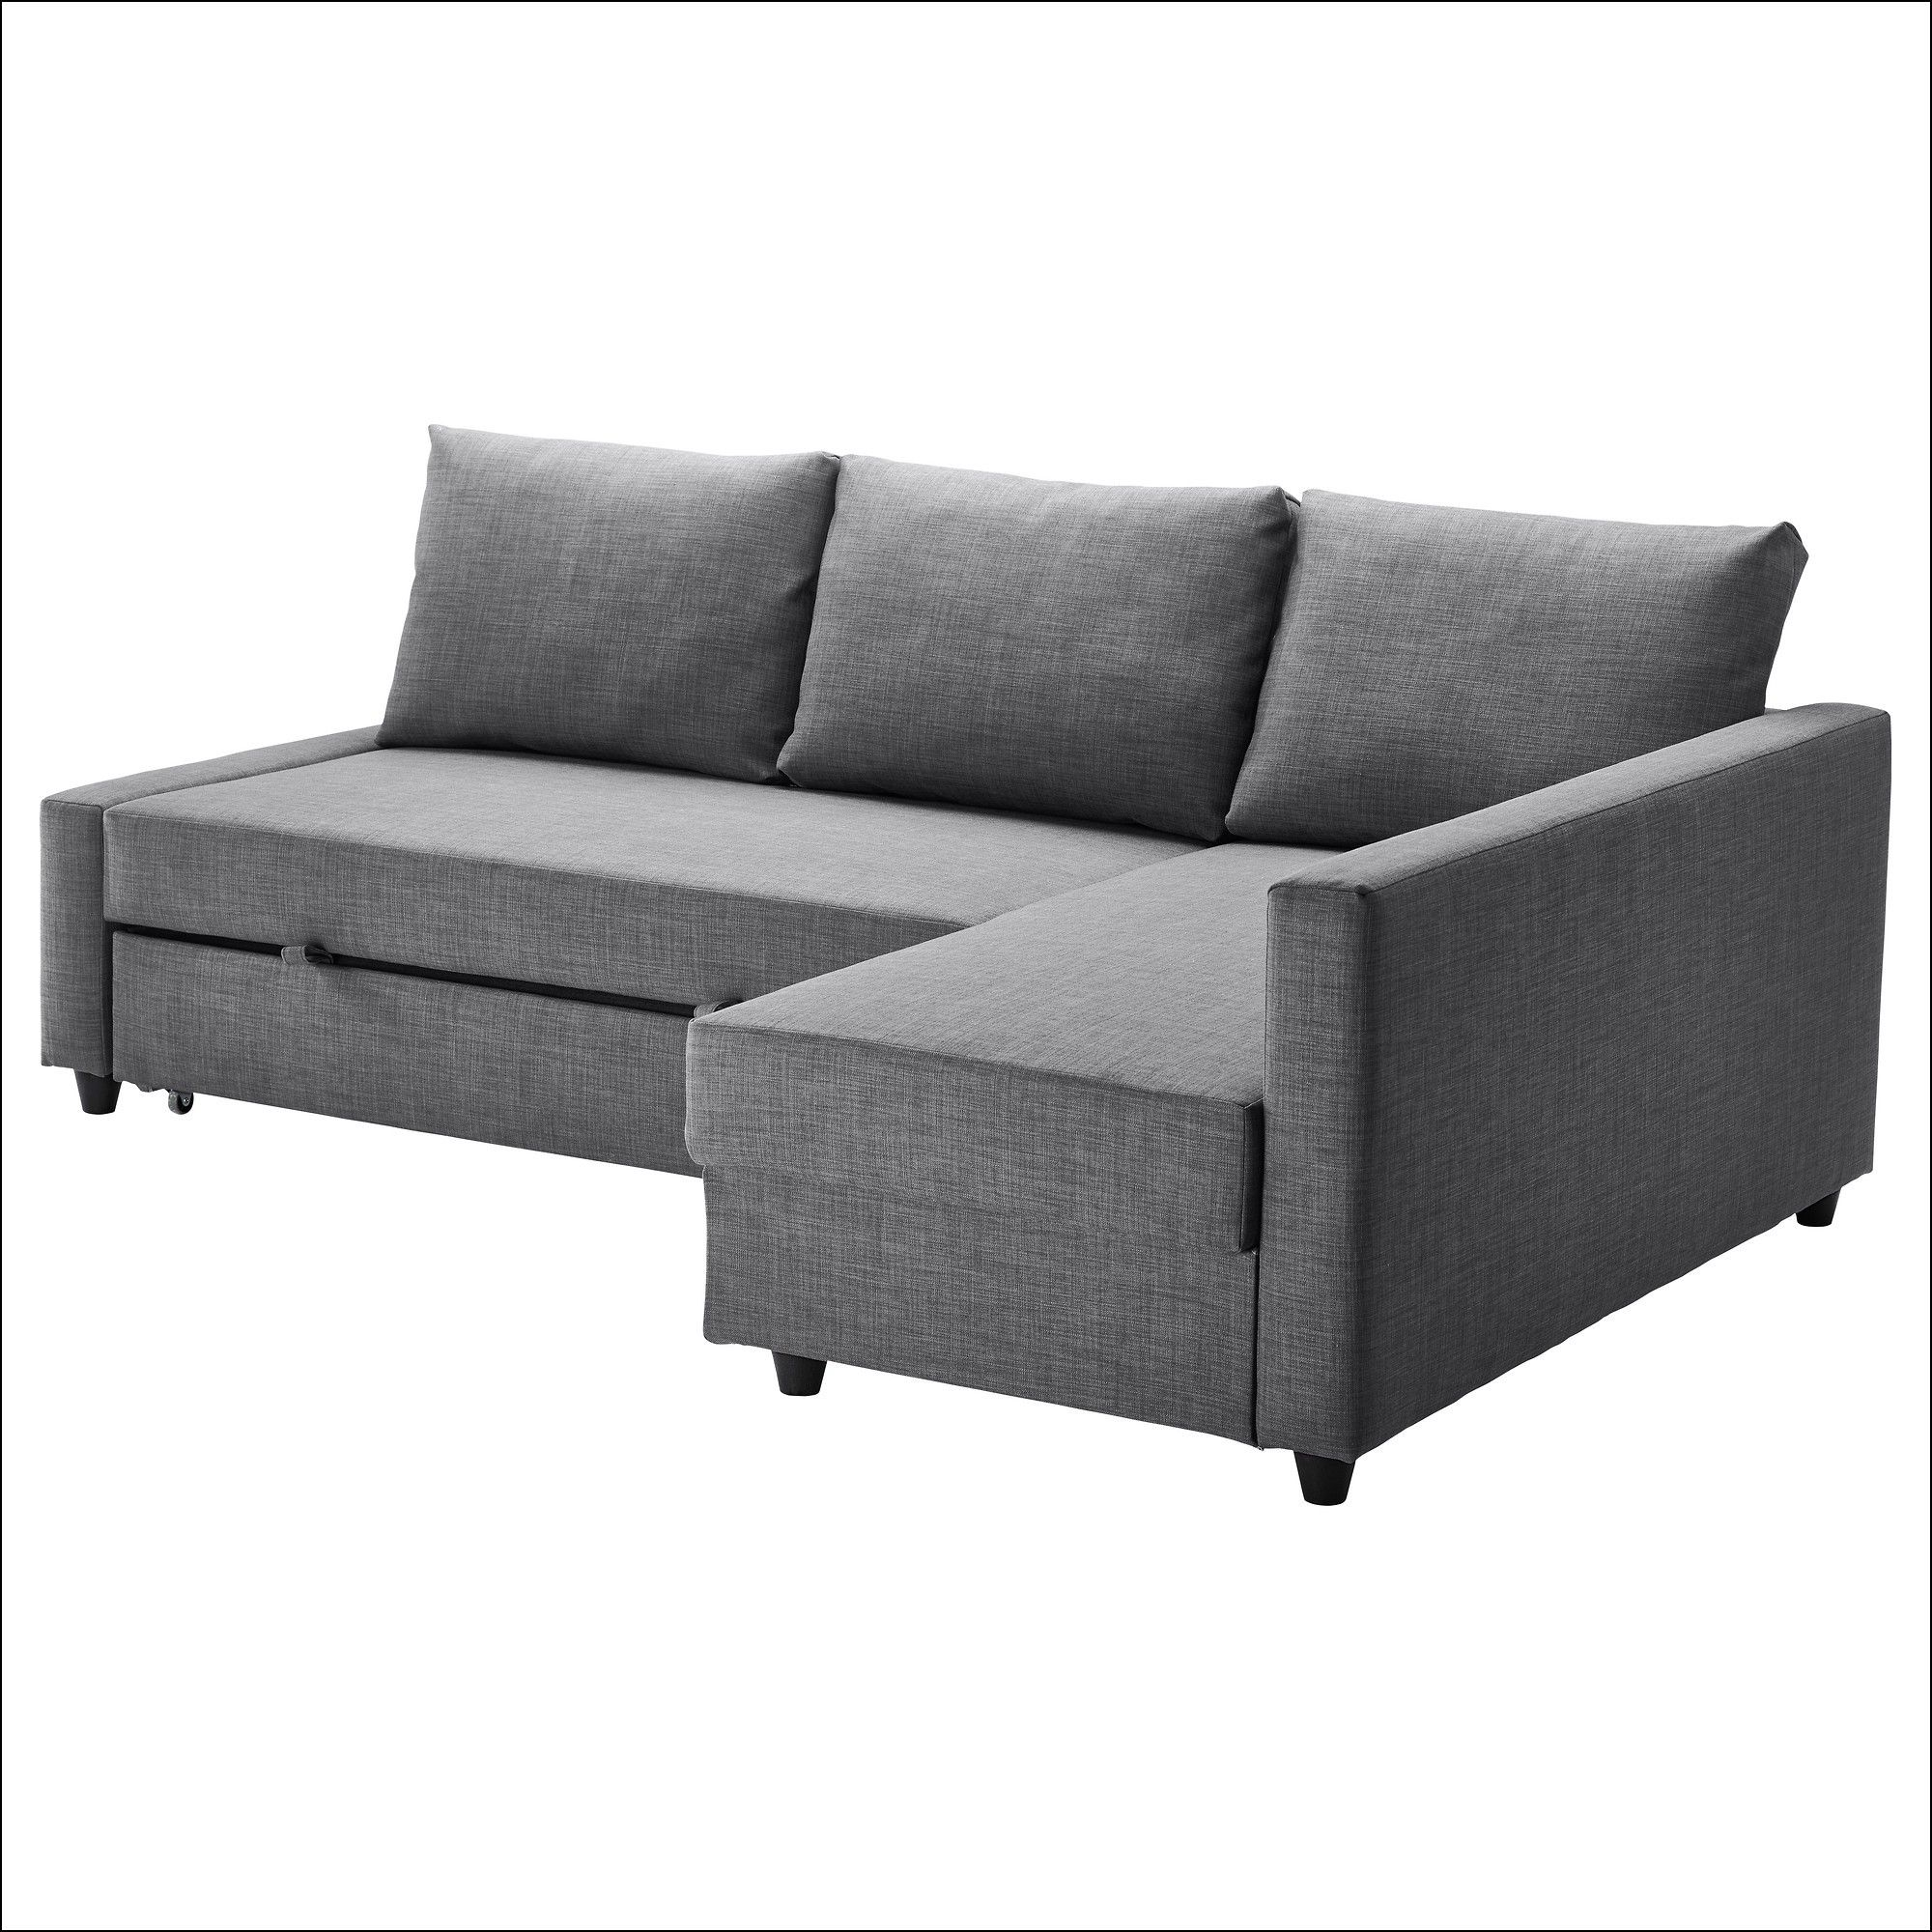 Pull Out Couch Bed Ikea Sofa Bed With Storage Corner Sofa Bed With Storage Corner Sofa Bed